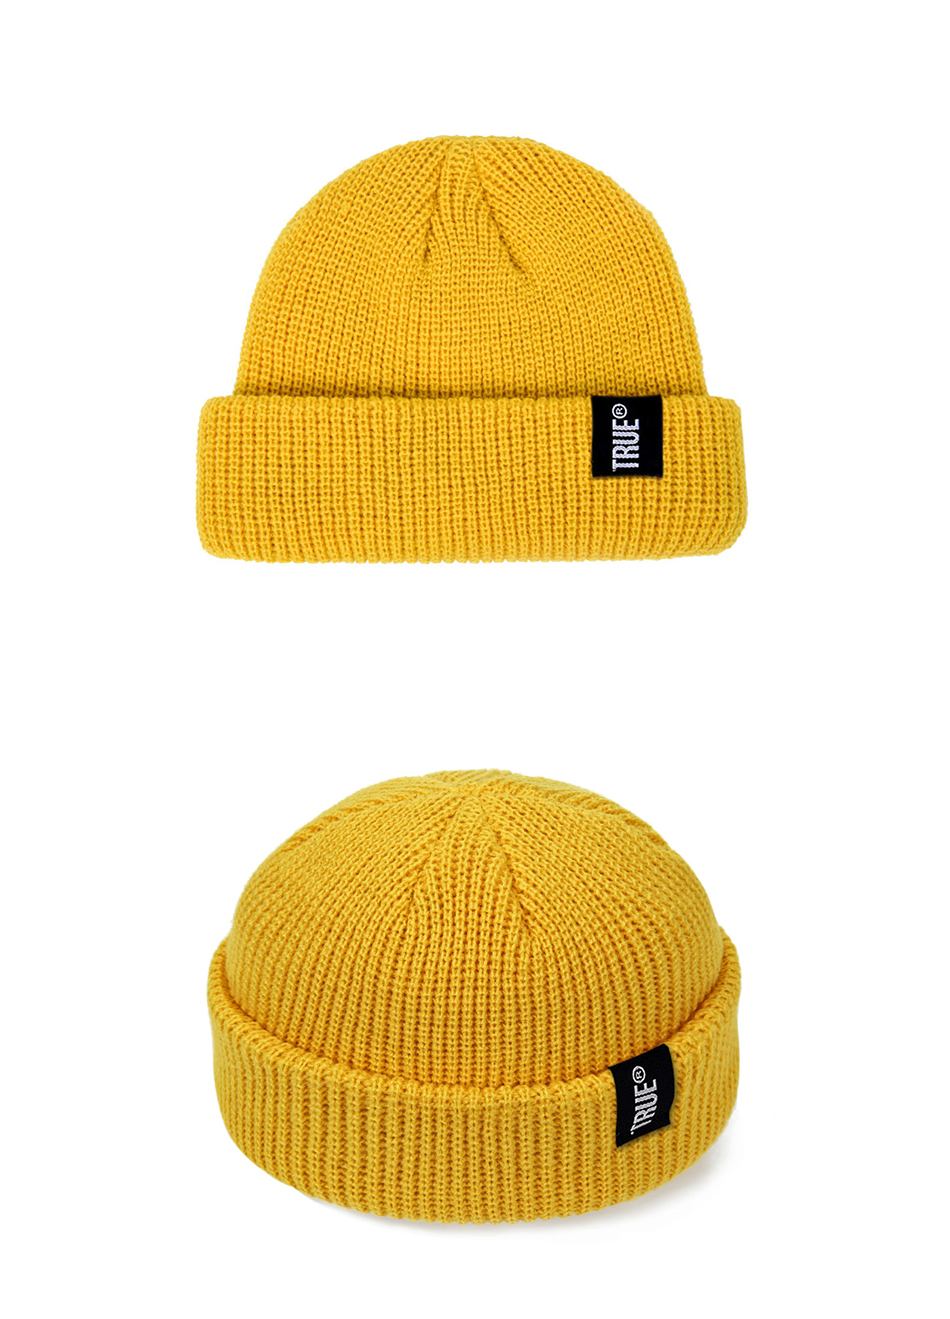 2021 Fashion Unisex Winter Hat Men Cuffed Cib Knit Hat Short Melon Ski Beanies Autumn Winter Solid Color Casual Beanie Hat 19